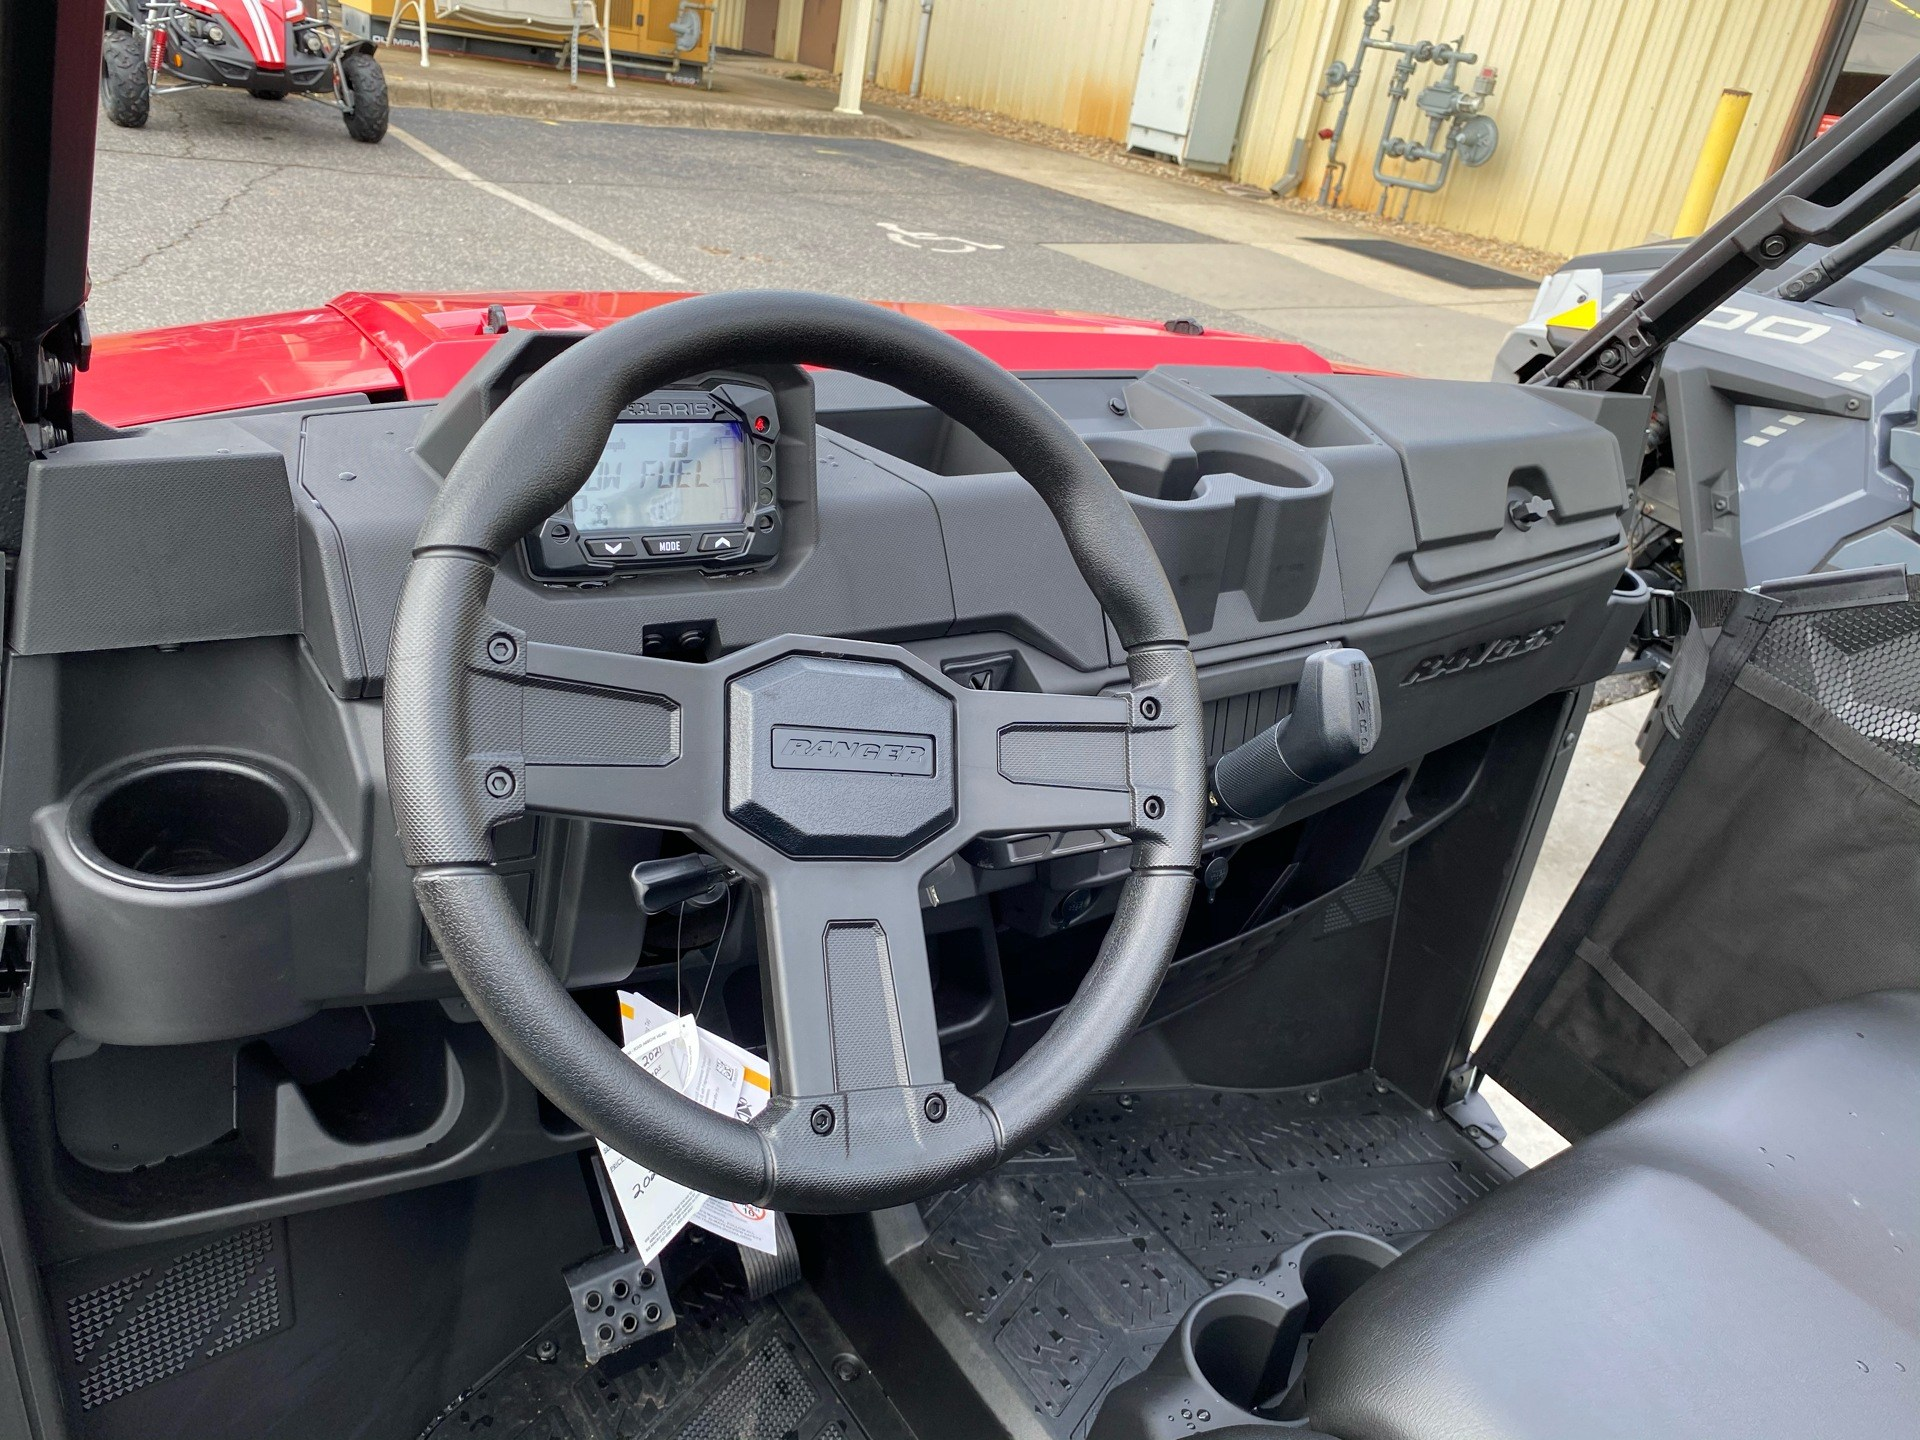 2021 Polaris Ranger 1000 EPS in Statesville, North Carolina - Photo 7